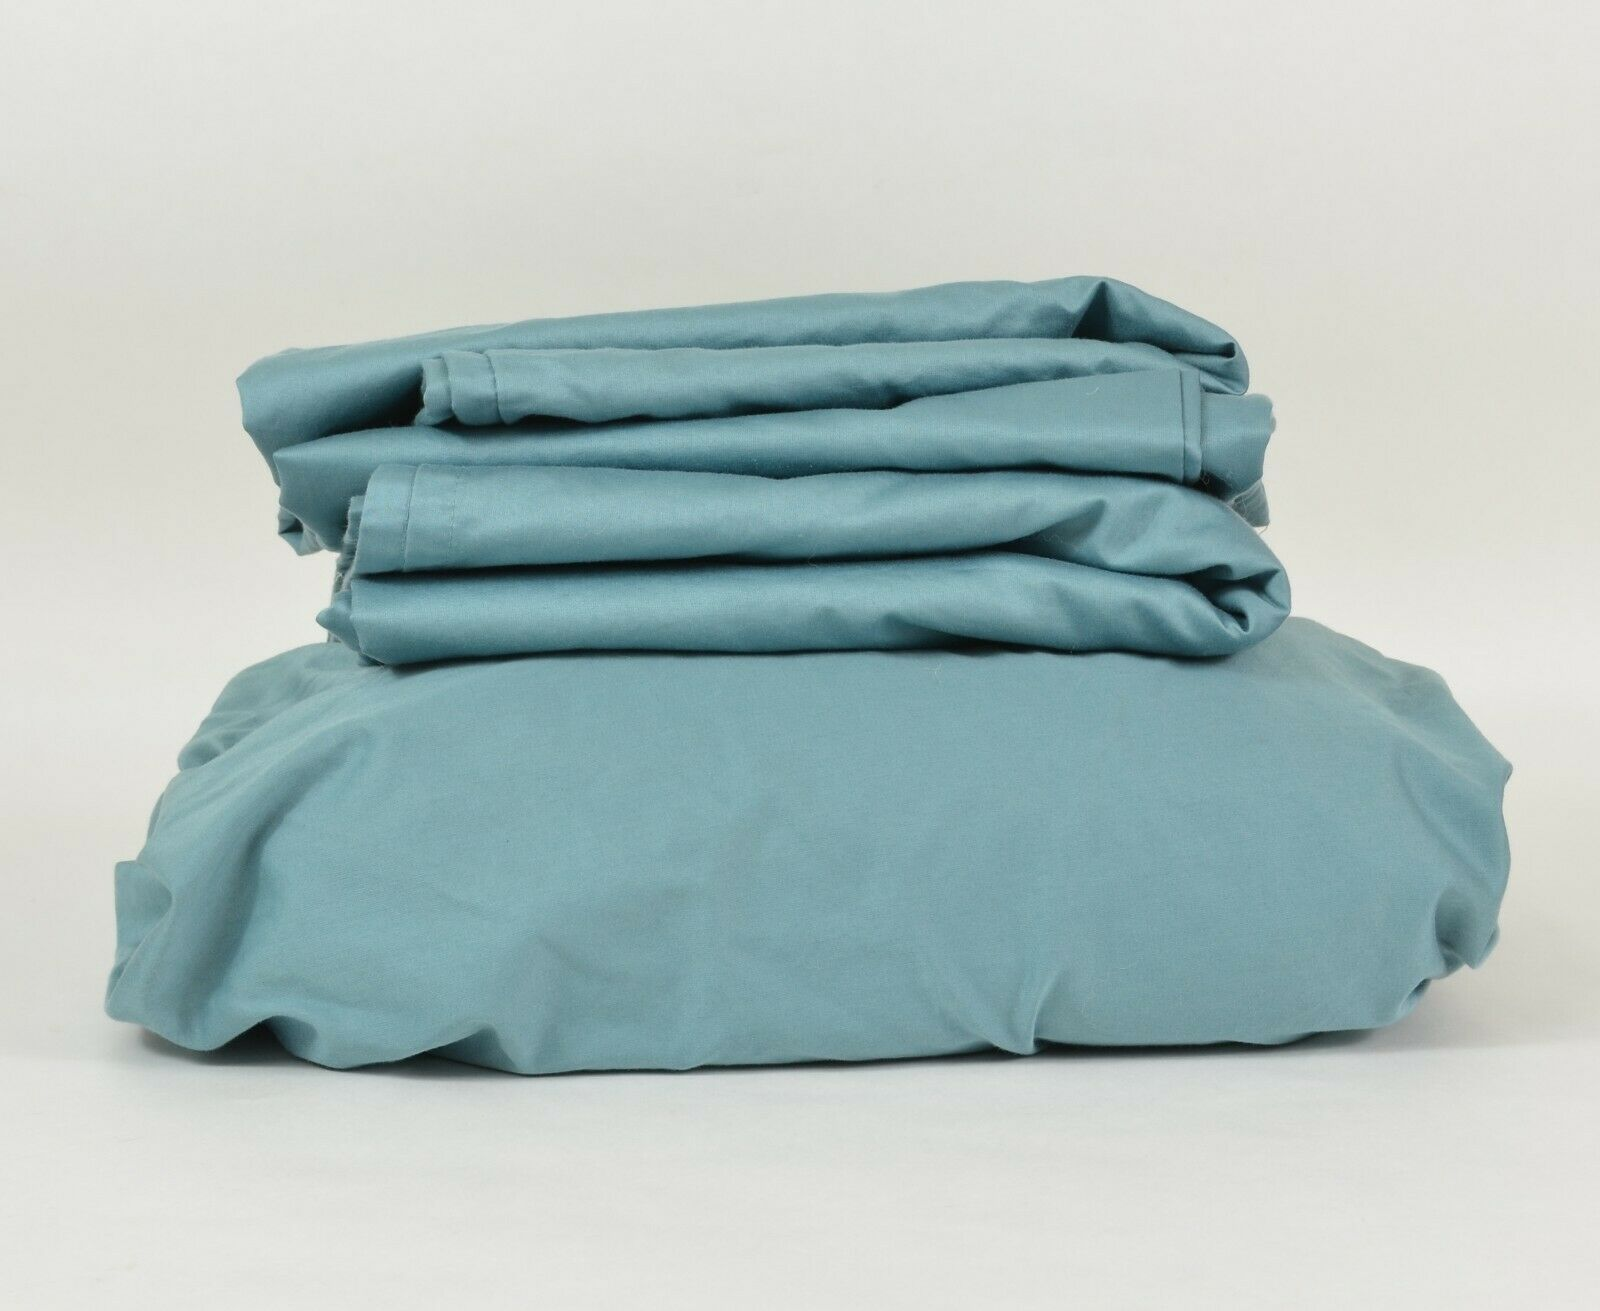 HOTEL STYLE 600 Thread Count Sateen Bedding SHEET Set   FULL blueeeee Puddle COTTON